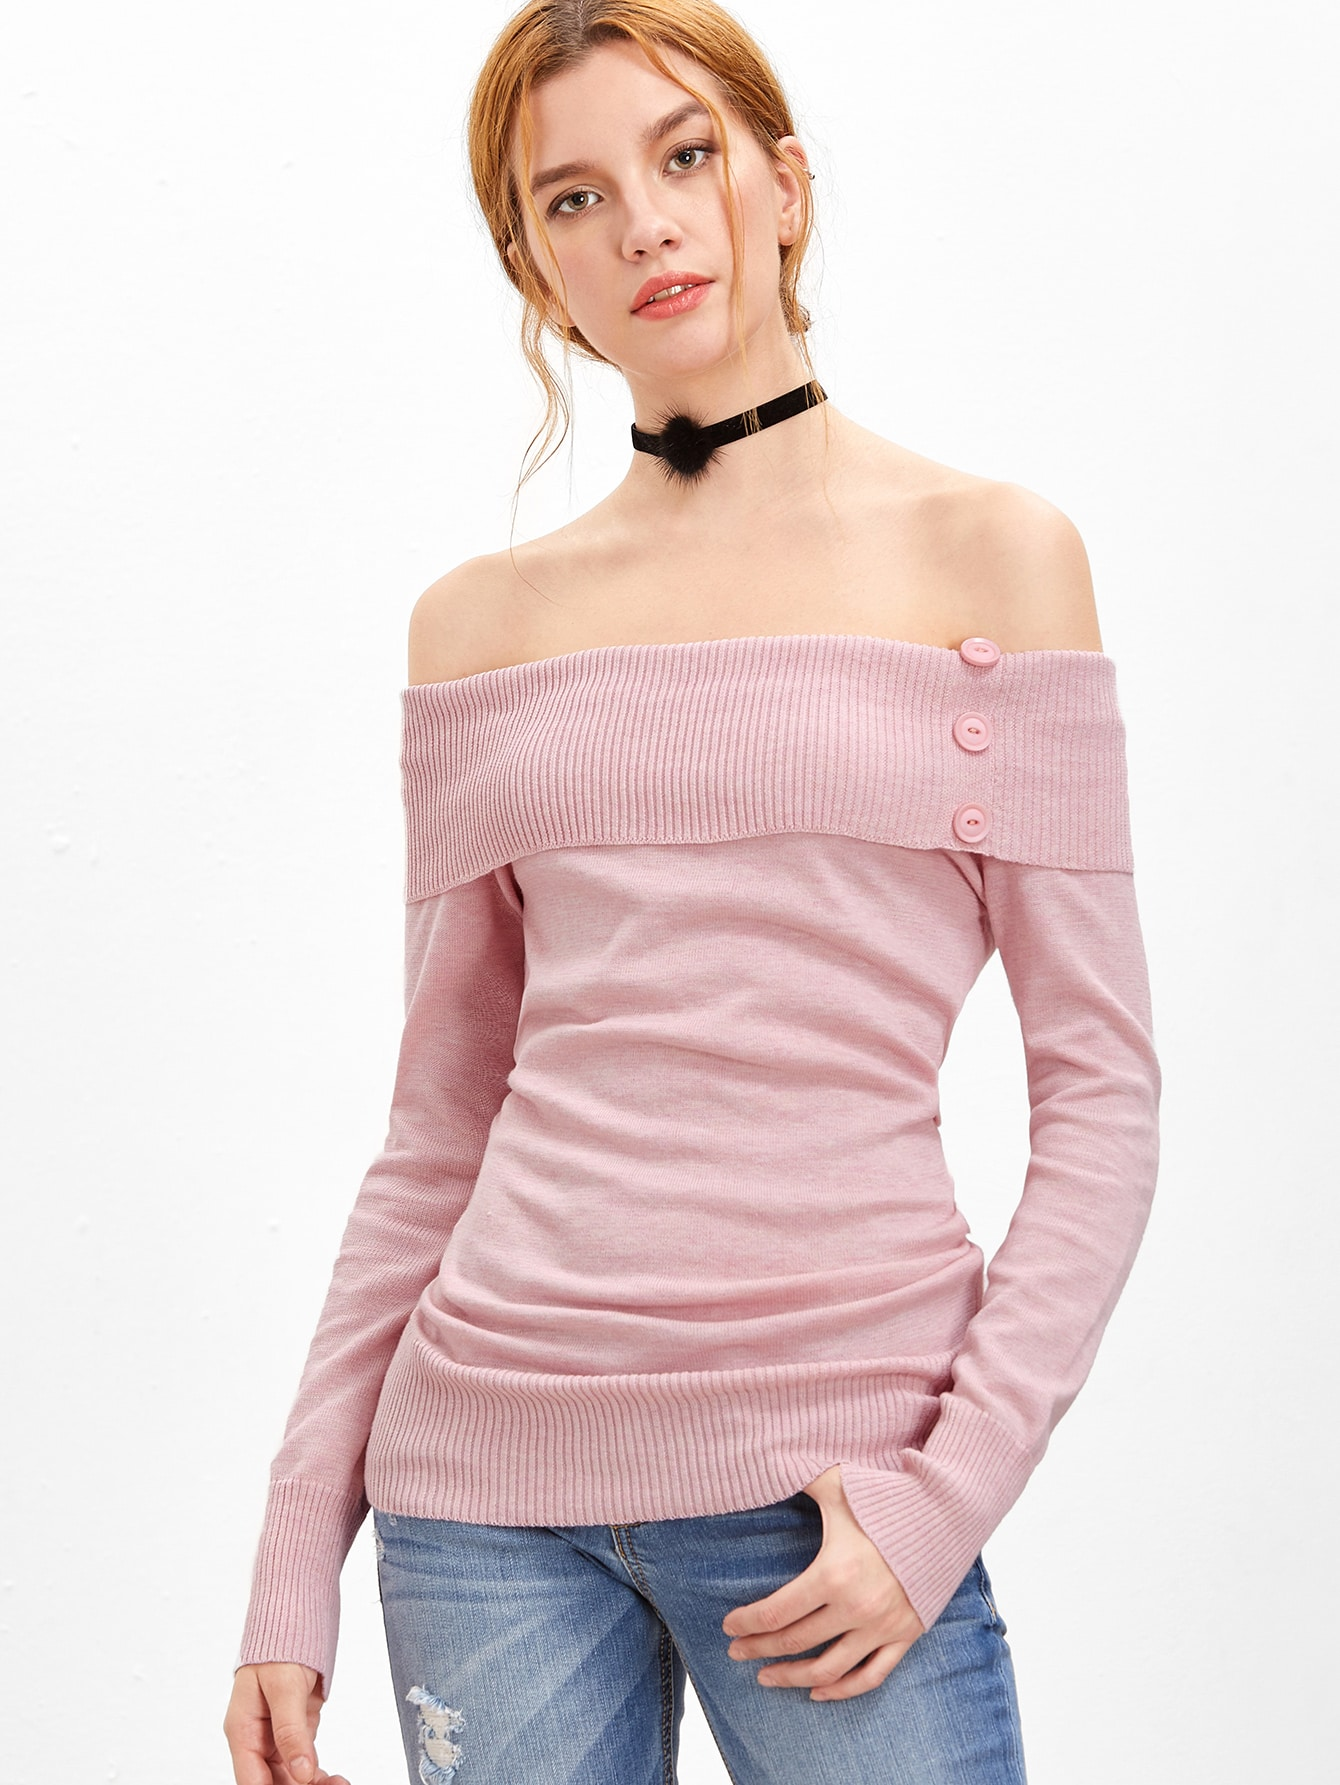 Pink Foldover Off The Shoulder Sweater sweater160923457